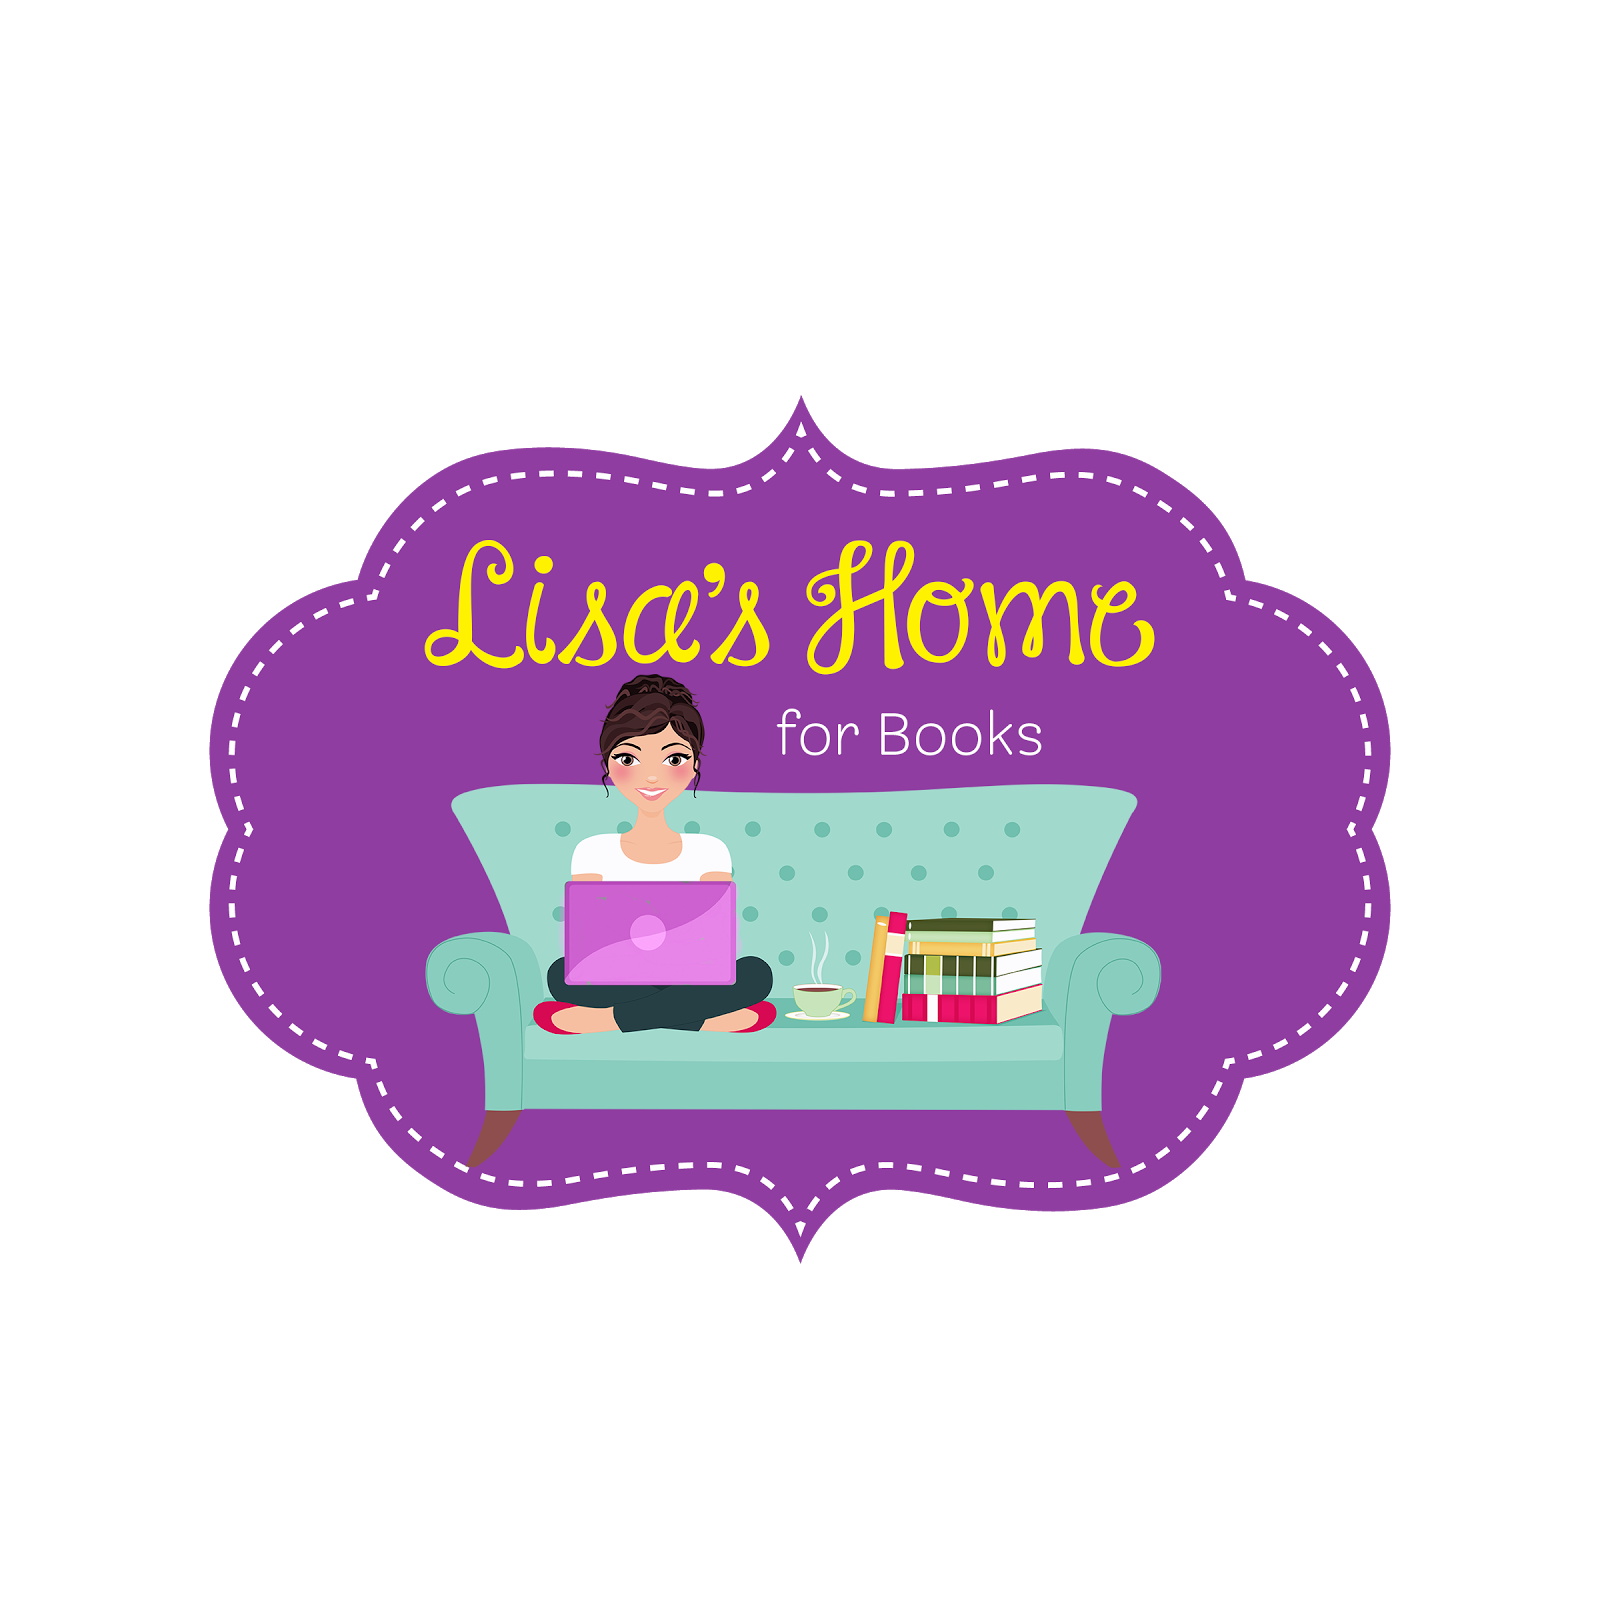 Lisa's Home for Books